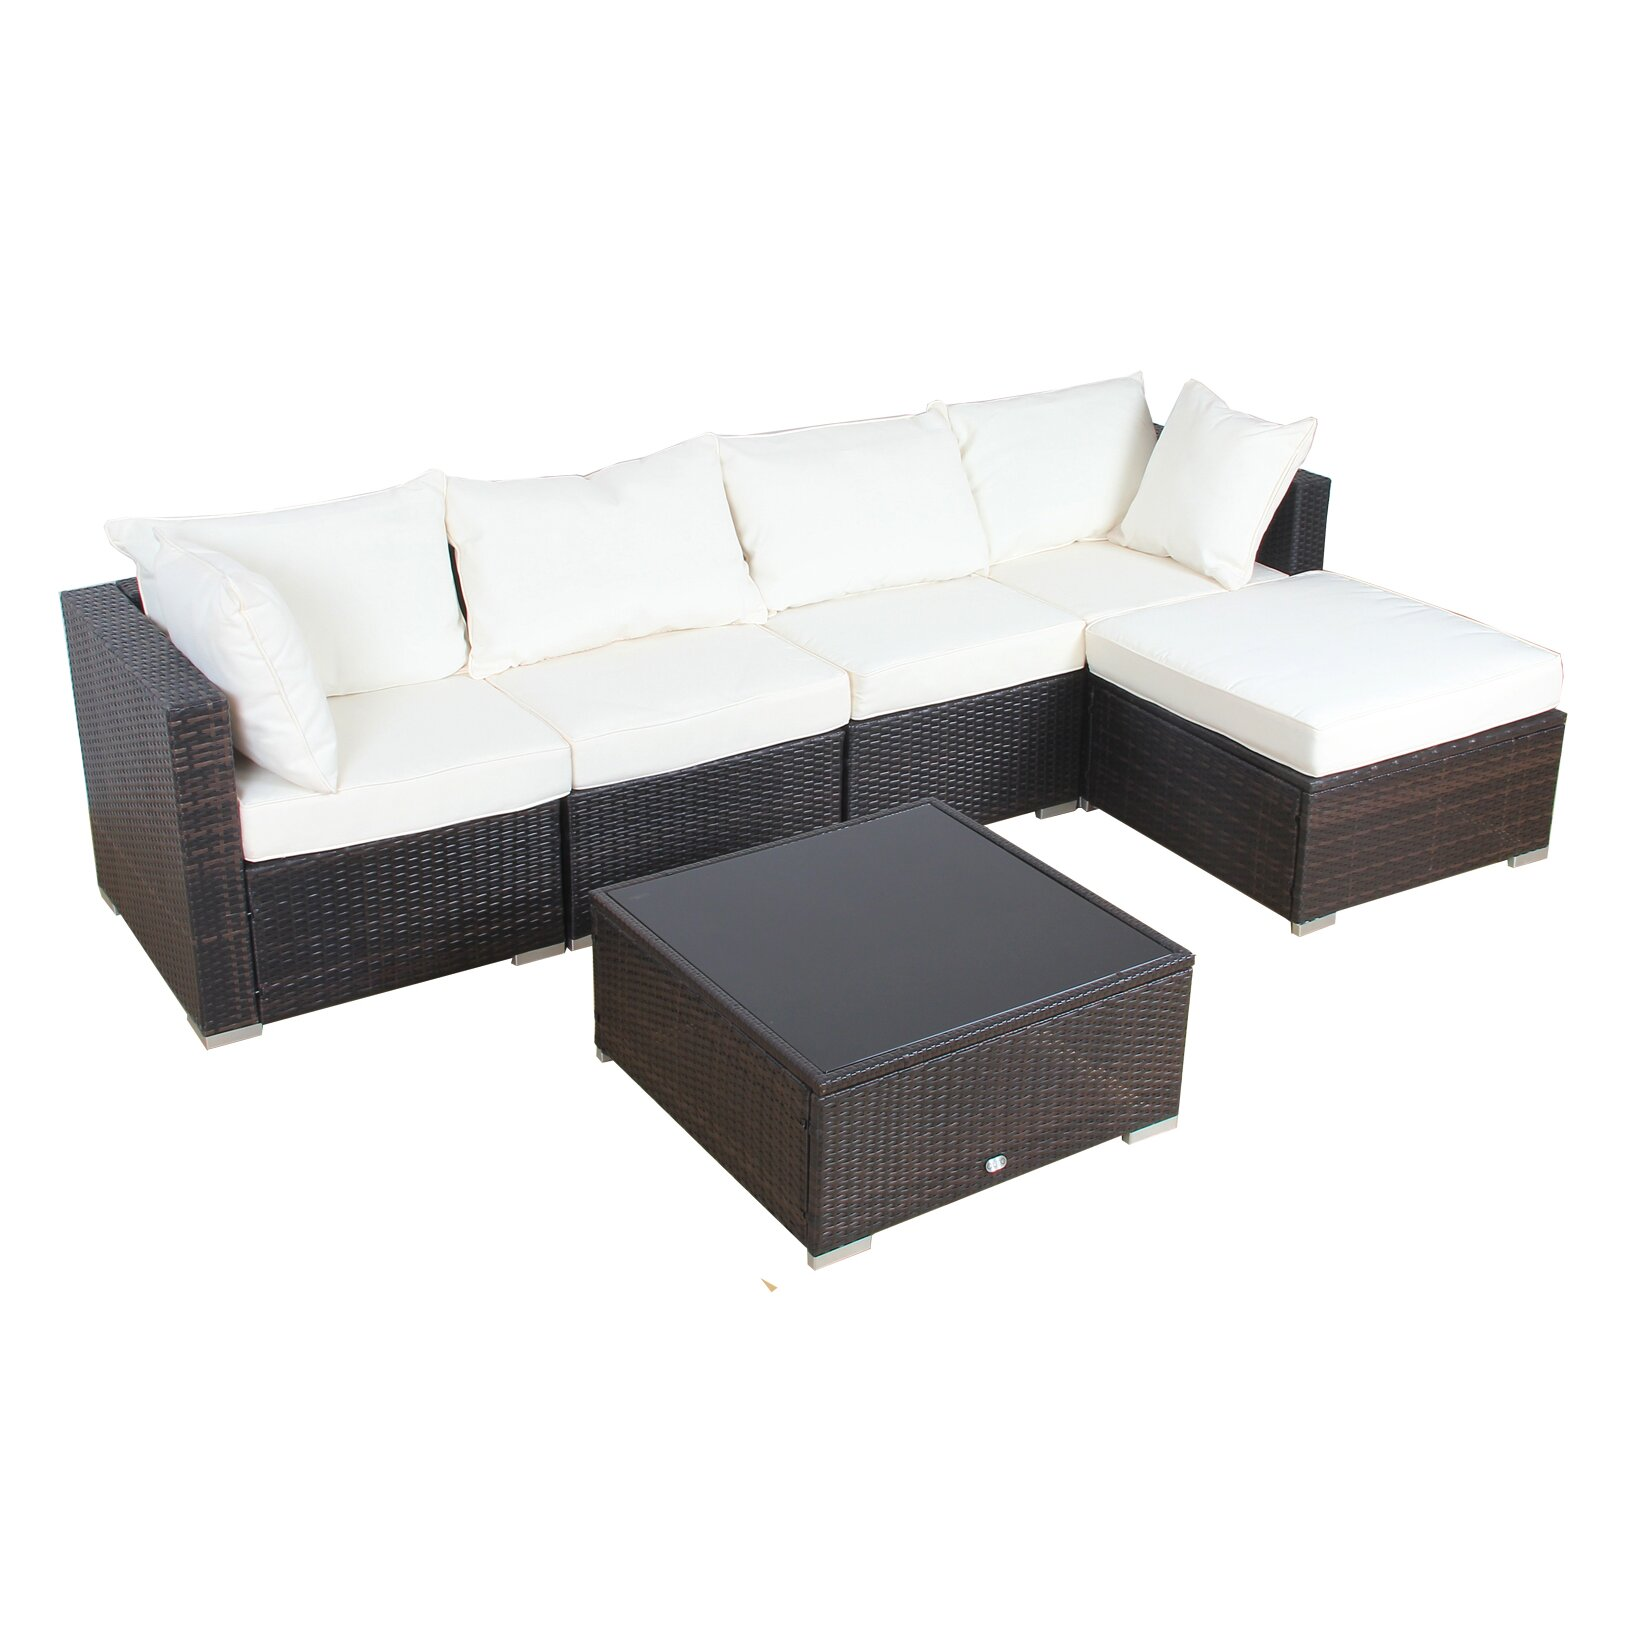 AuroFurniture Patio 6 Piece Sectional Seating Group with